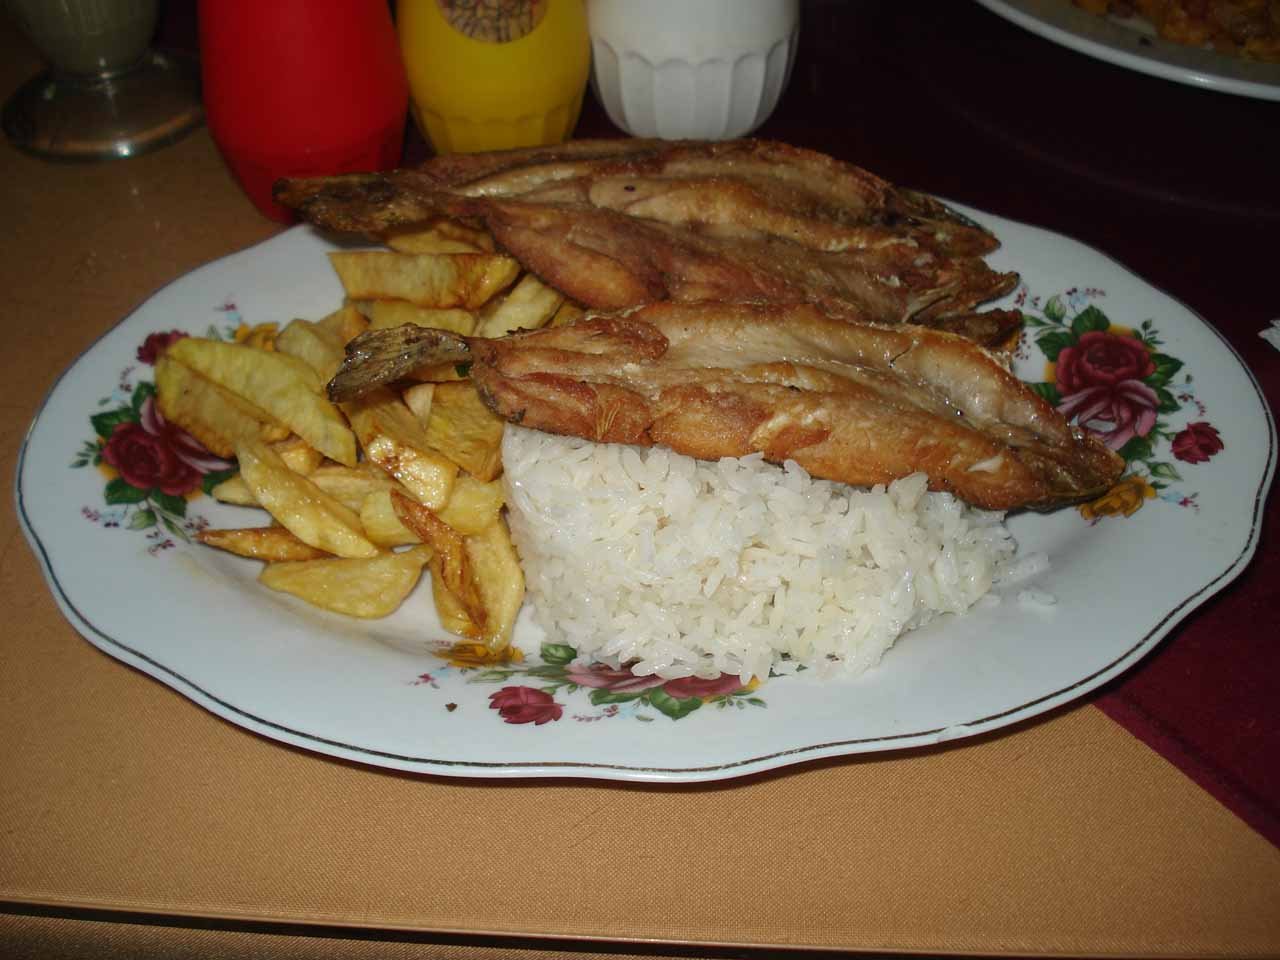 The truchas fritas (fried trout) with papas fritas (fries)